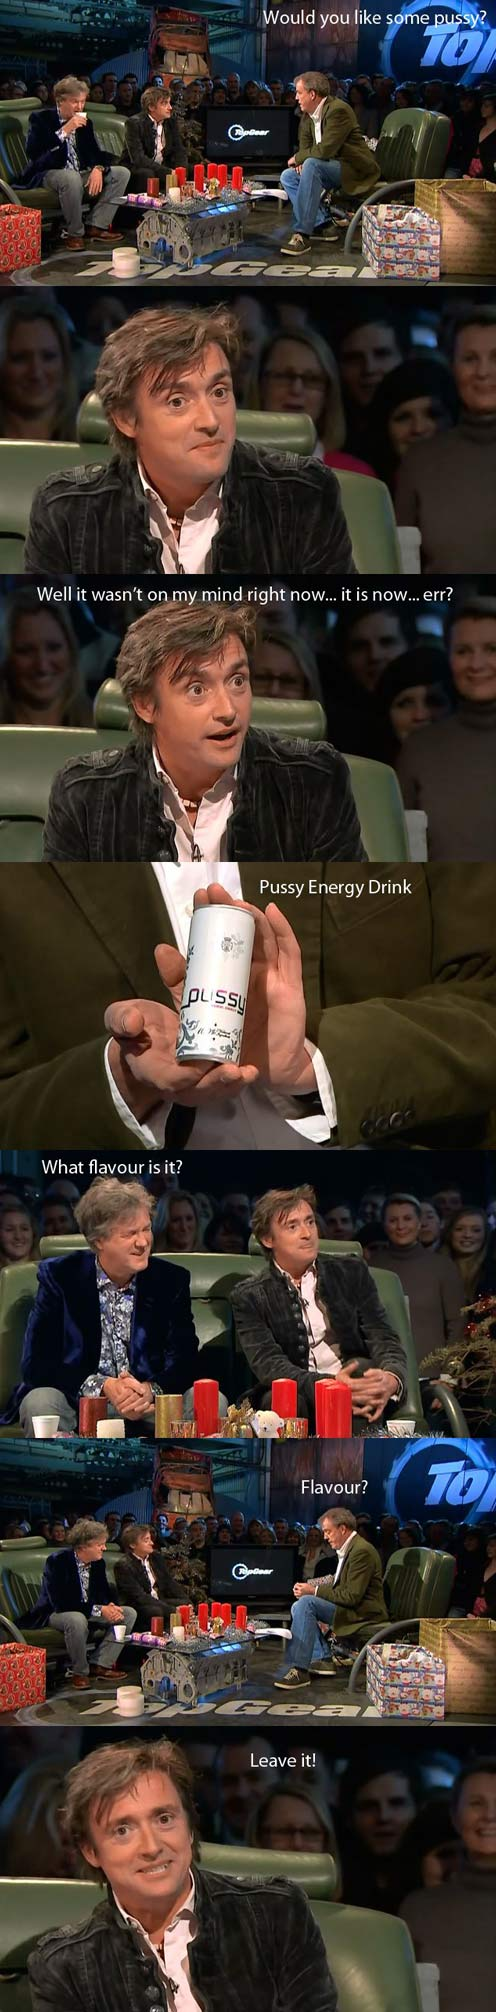 funny-Top-Gear-energy-drink